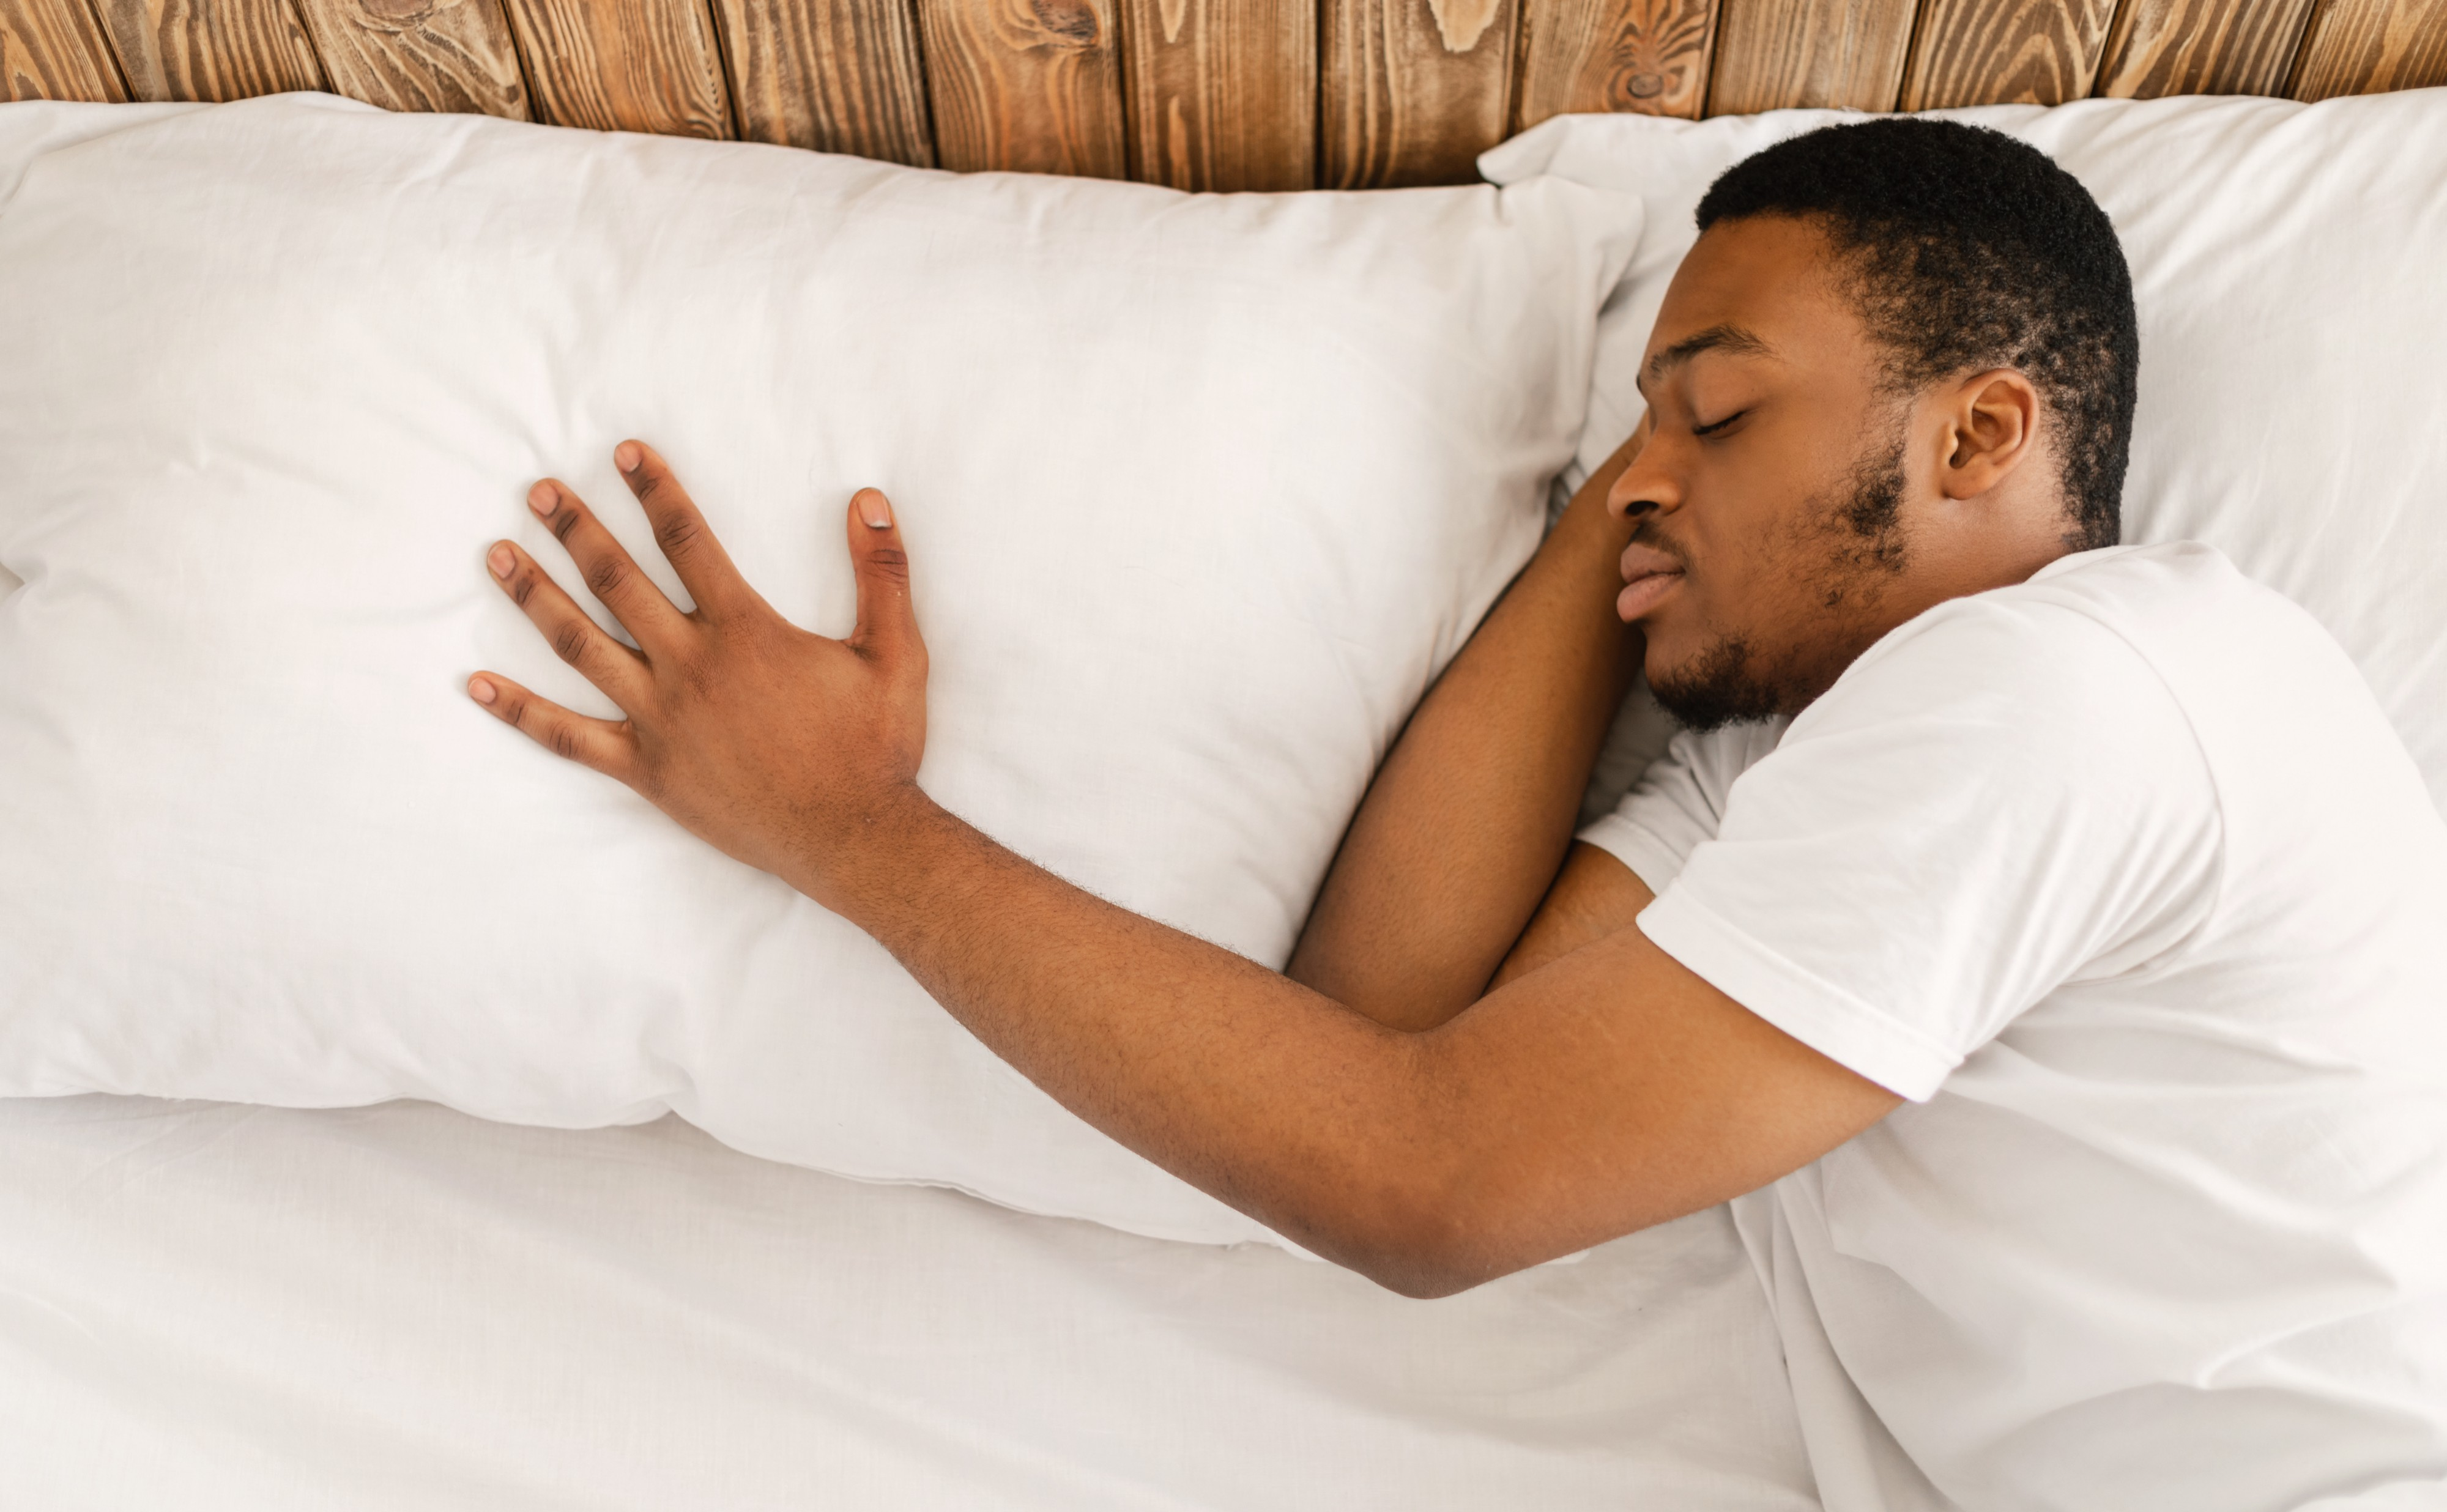 A man sleeps alone and rests his hand on the pillow where his partner used to sleep.